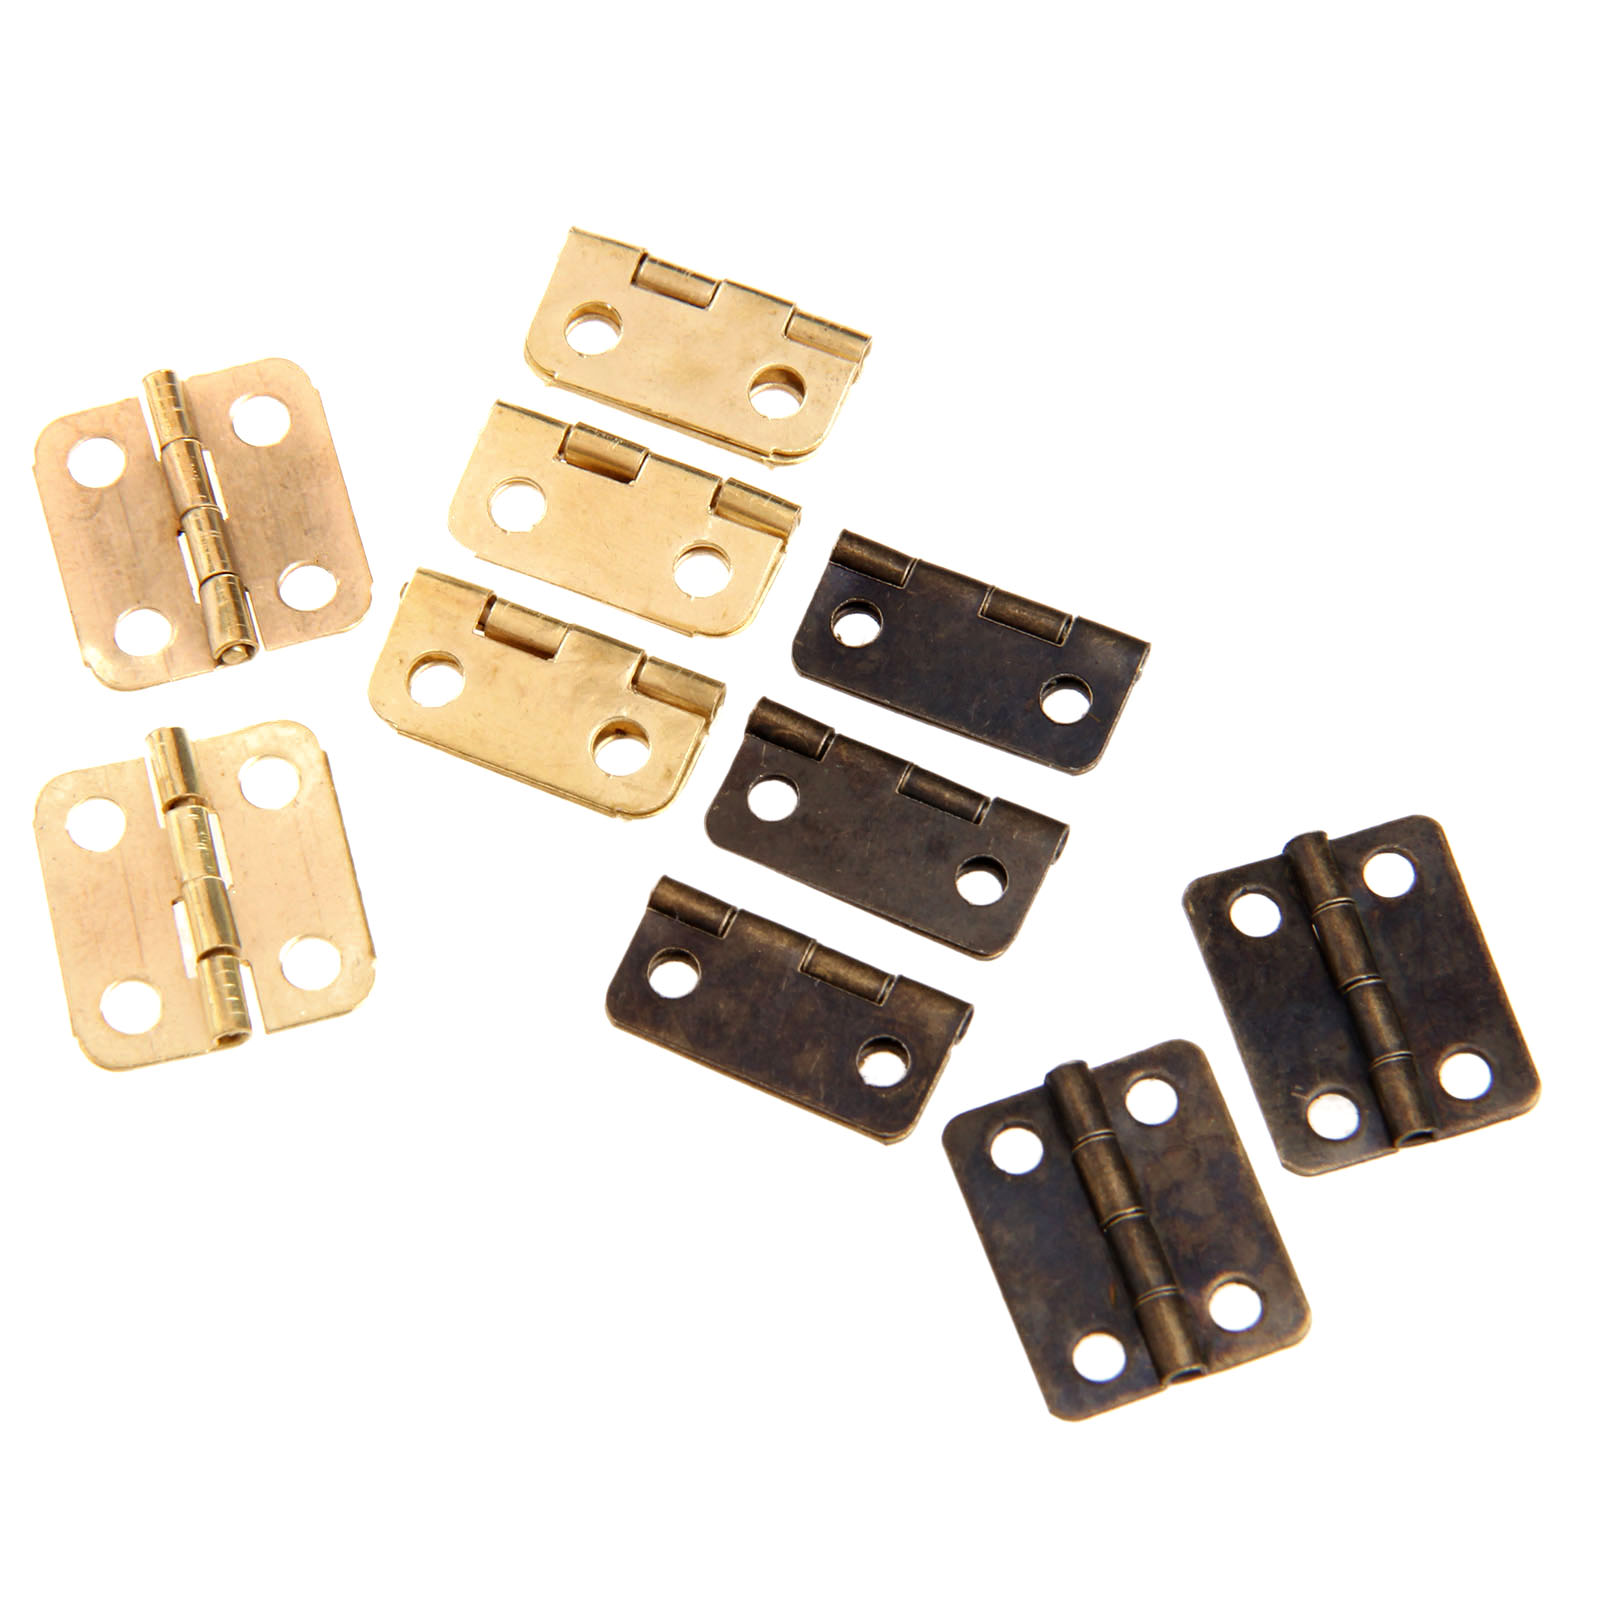 10Pcs Antique Bronze/Gold Cabinet Hinges Furniture Accessories Jewelry Boxes Small Hinge Furniture Fittings For Cabinets 16x13mm(China (Mainland))